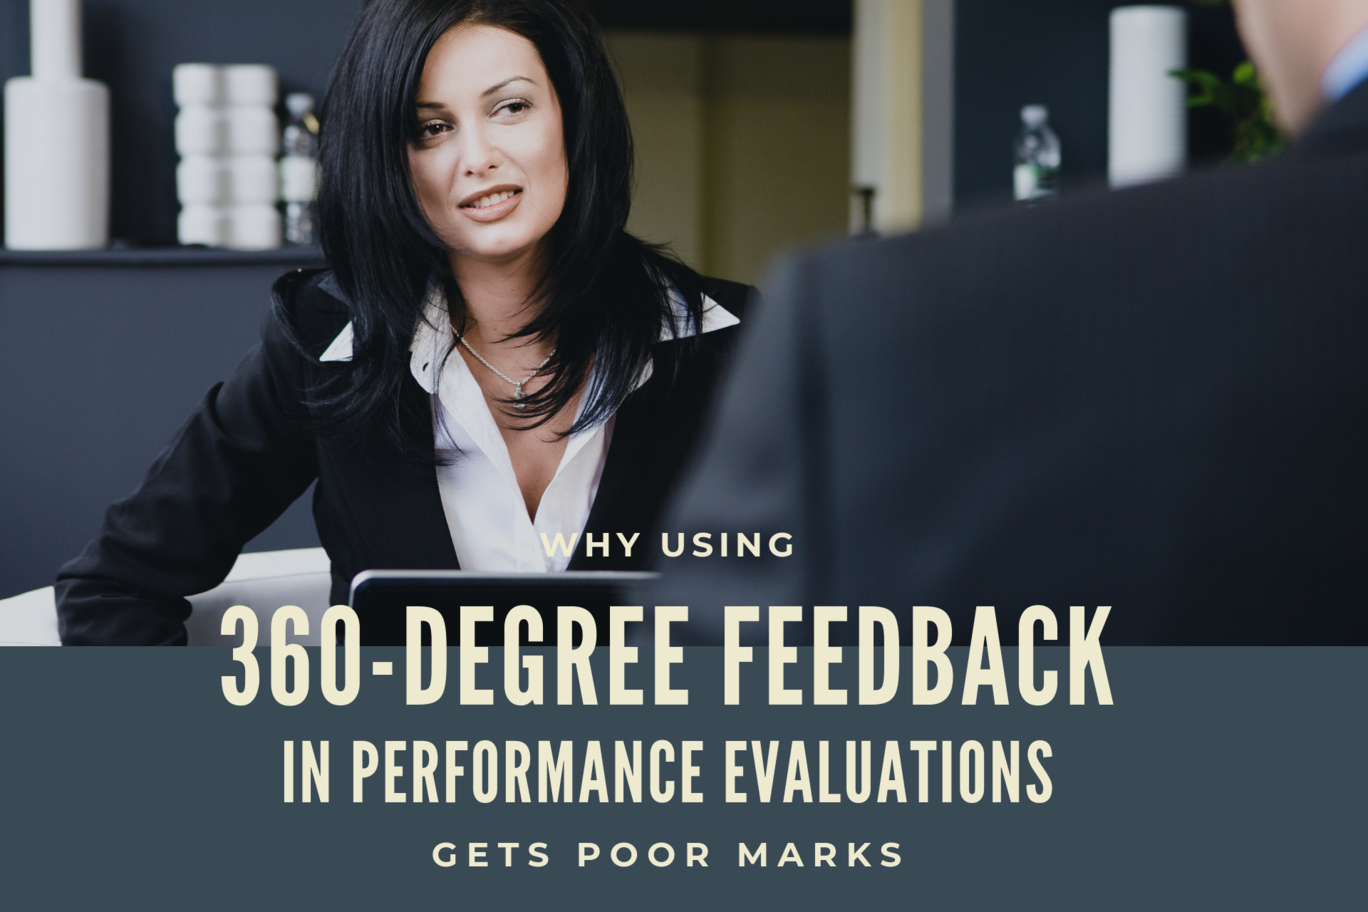 360-Degree Feedback in Performance Evaluations